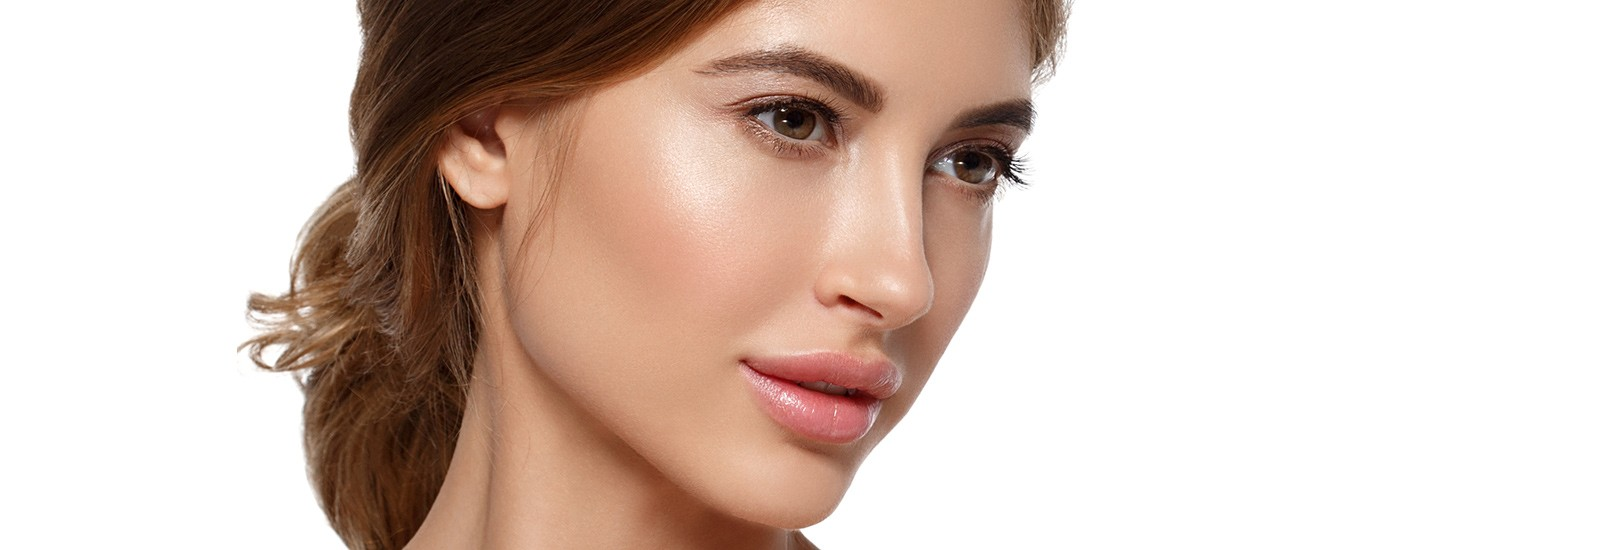 Rhinoplasty procedure and after-care